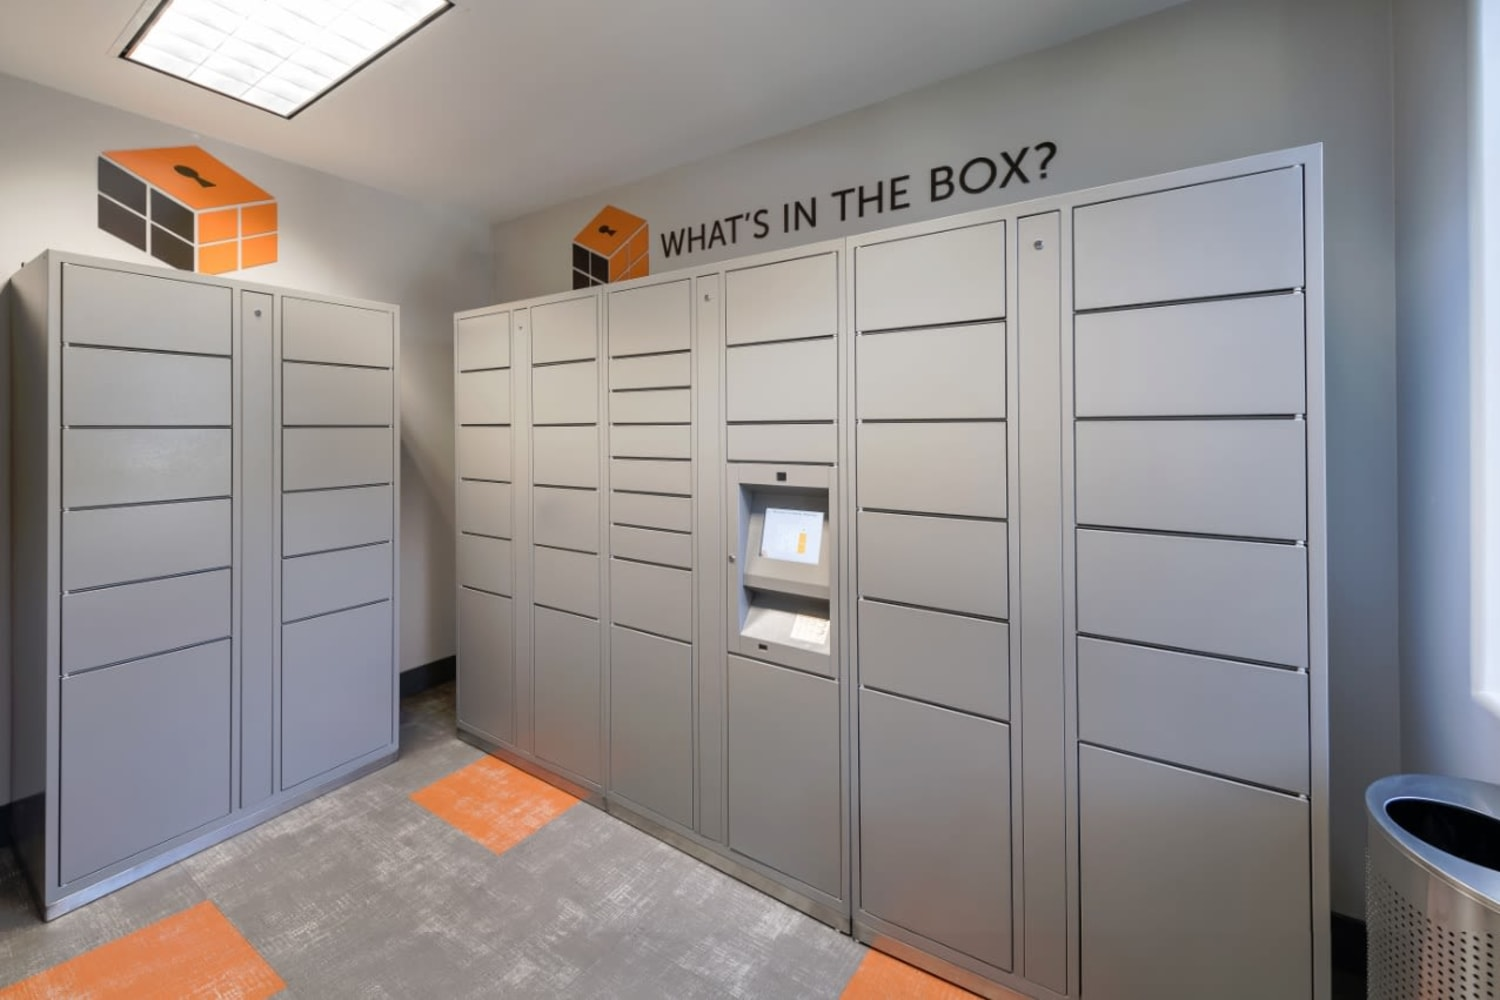 Mail room at Madrid Apartments in Mission Viejo, California